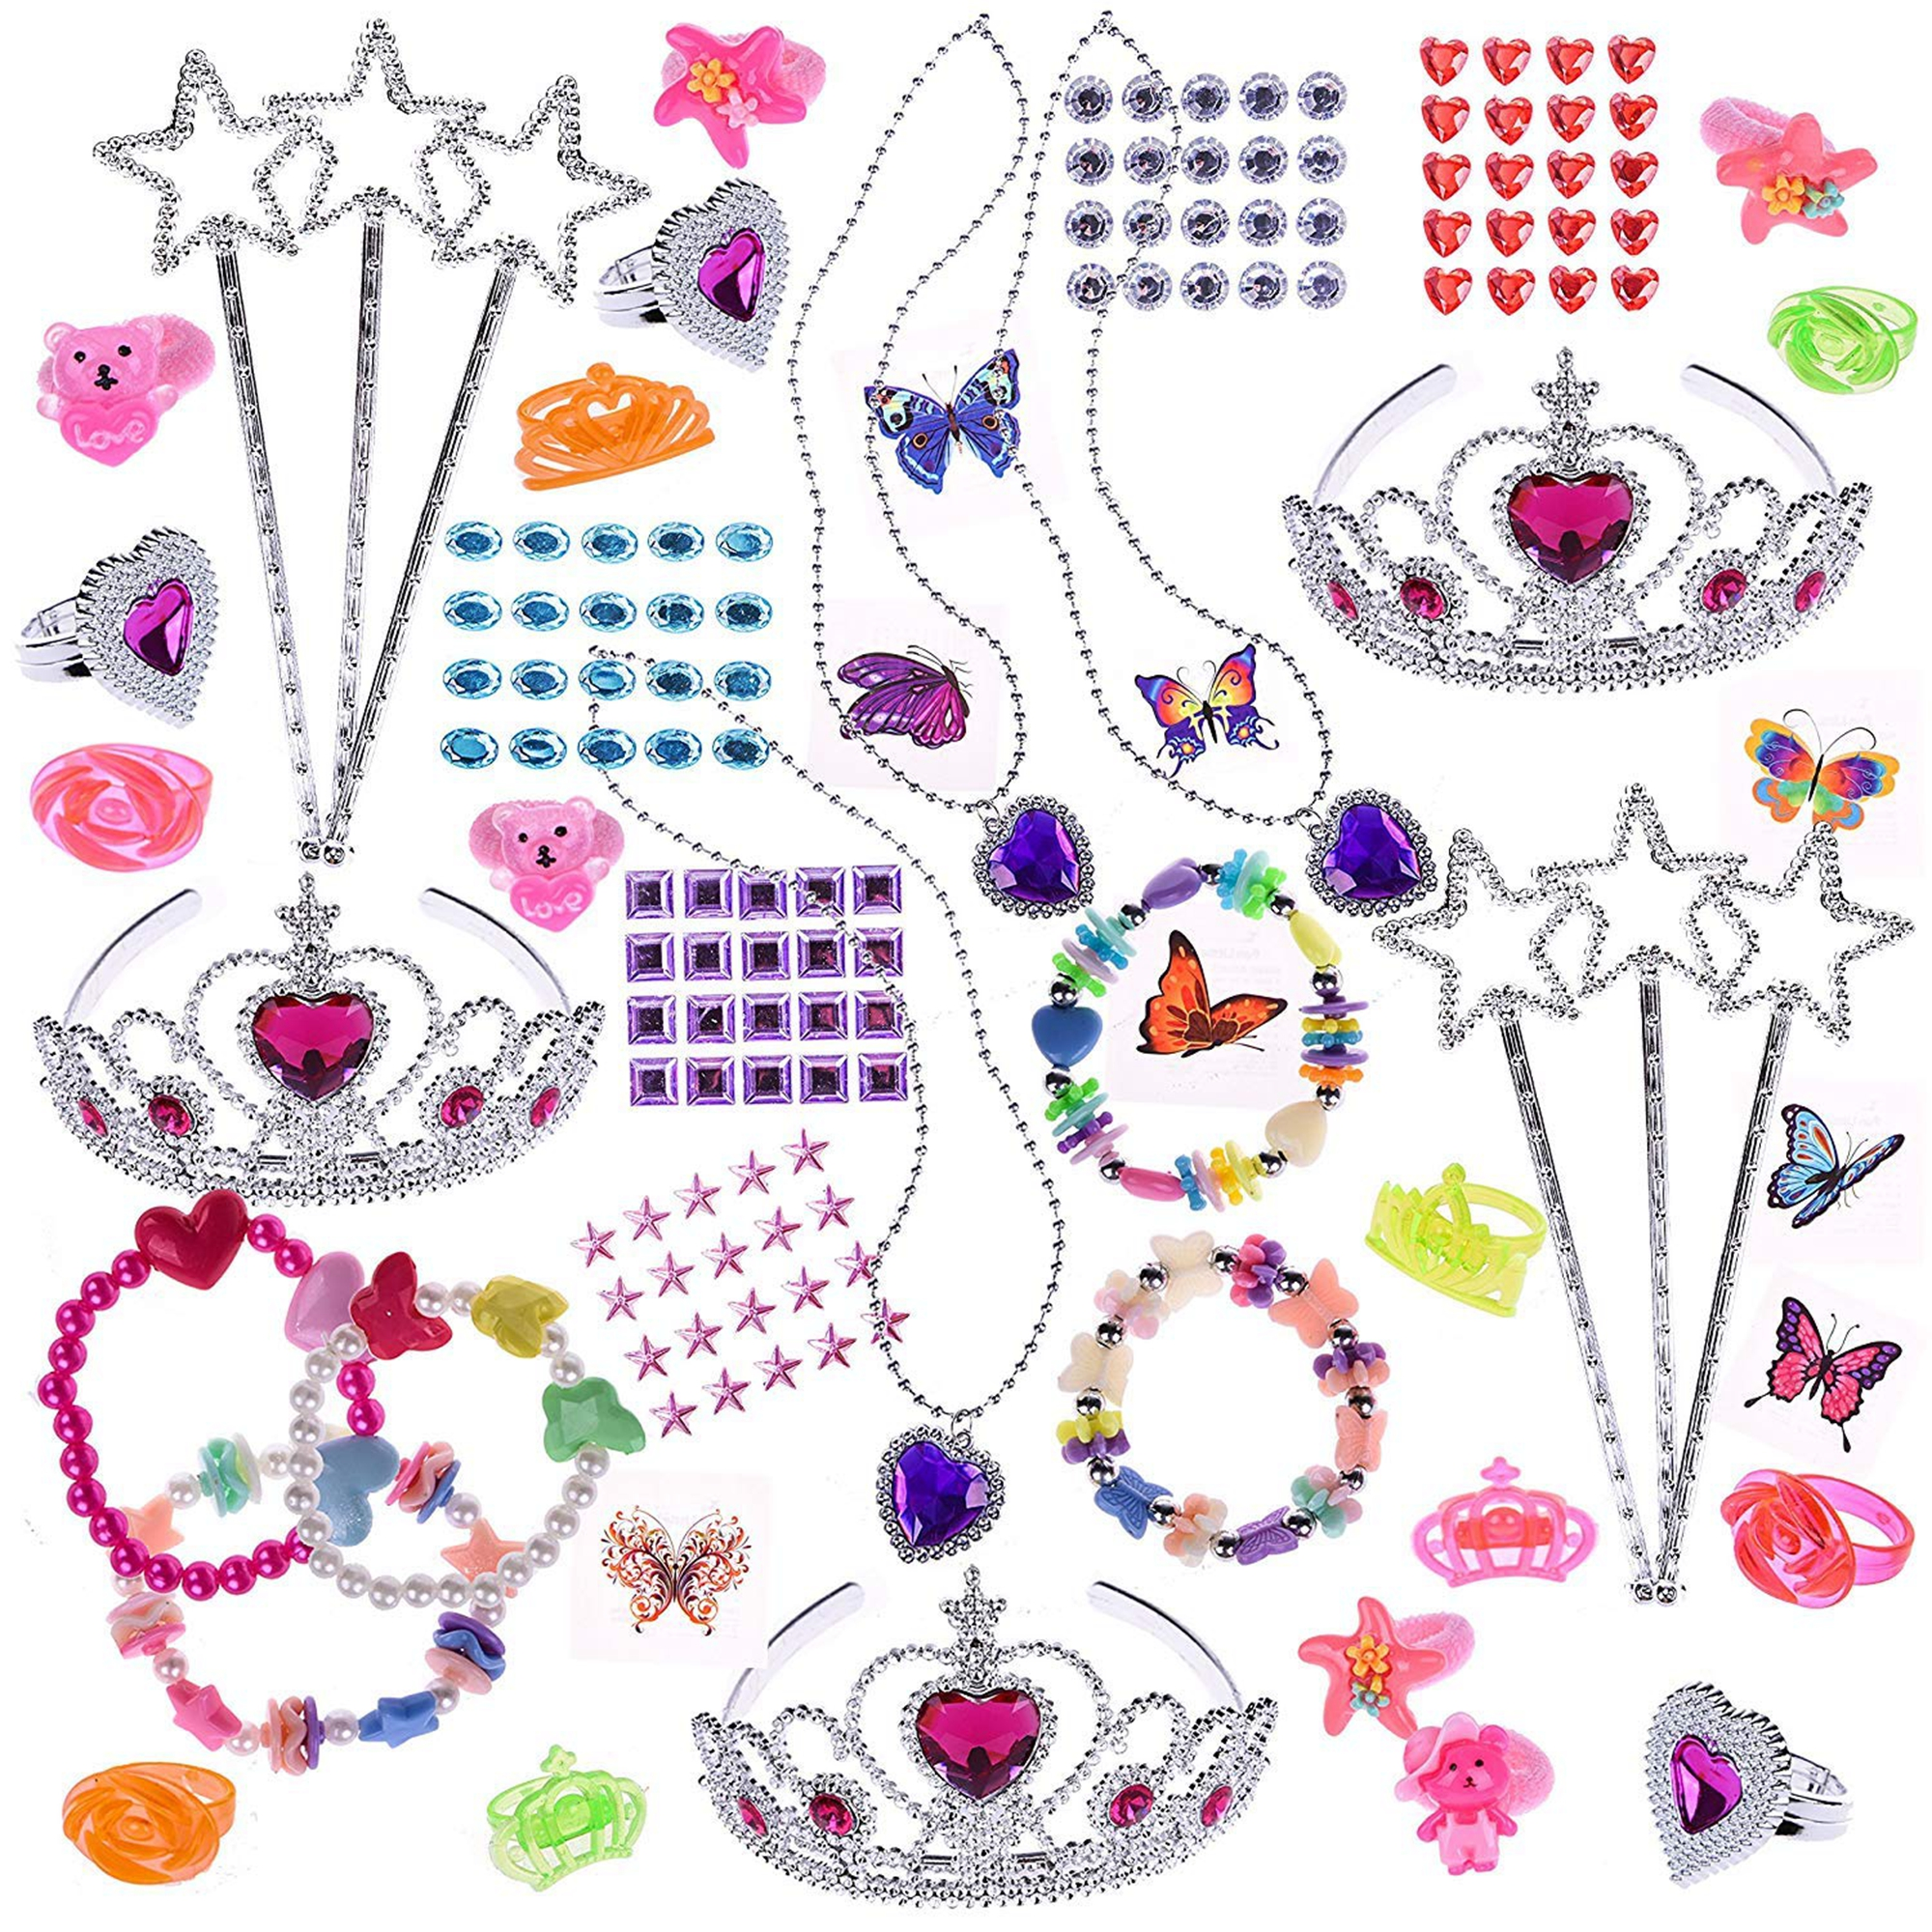 68Pcs Princess Party Favor Toys for Girls, Party Favor for kids